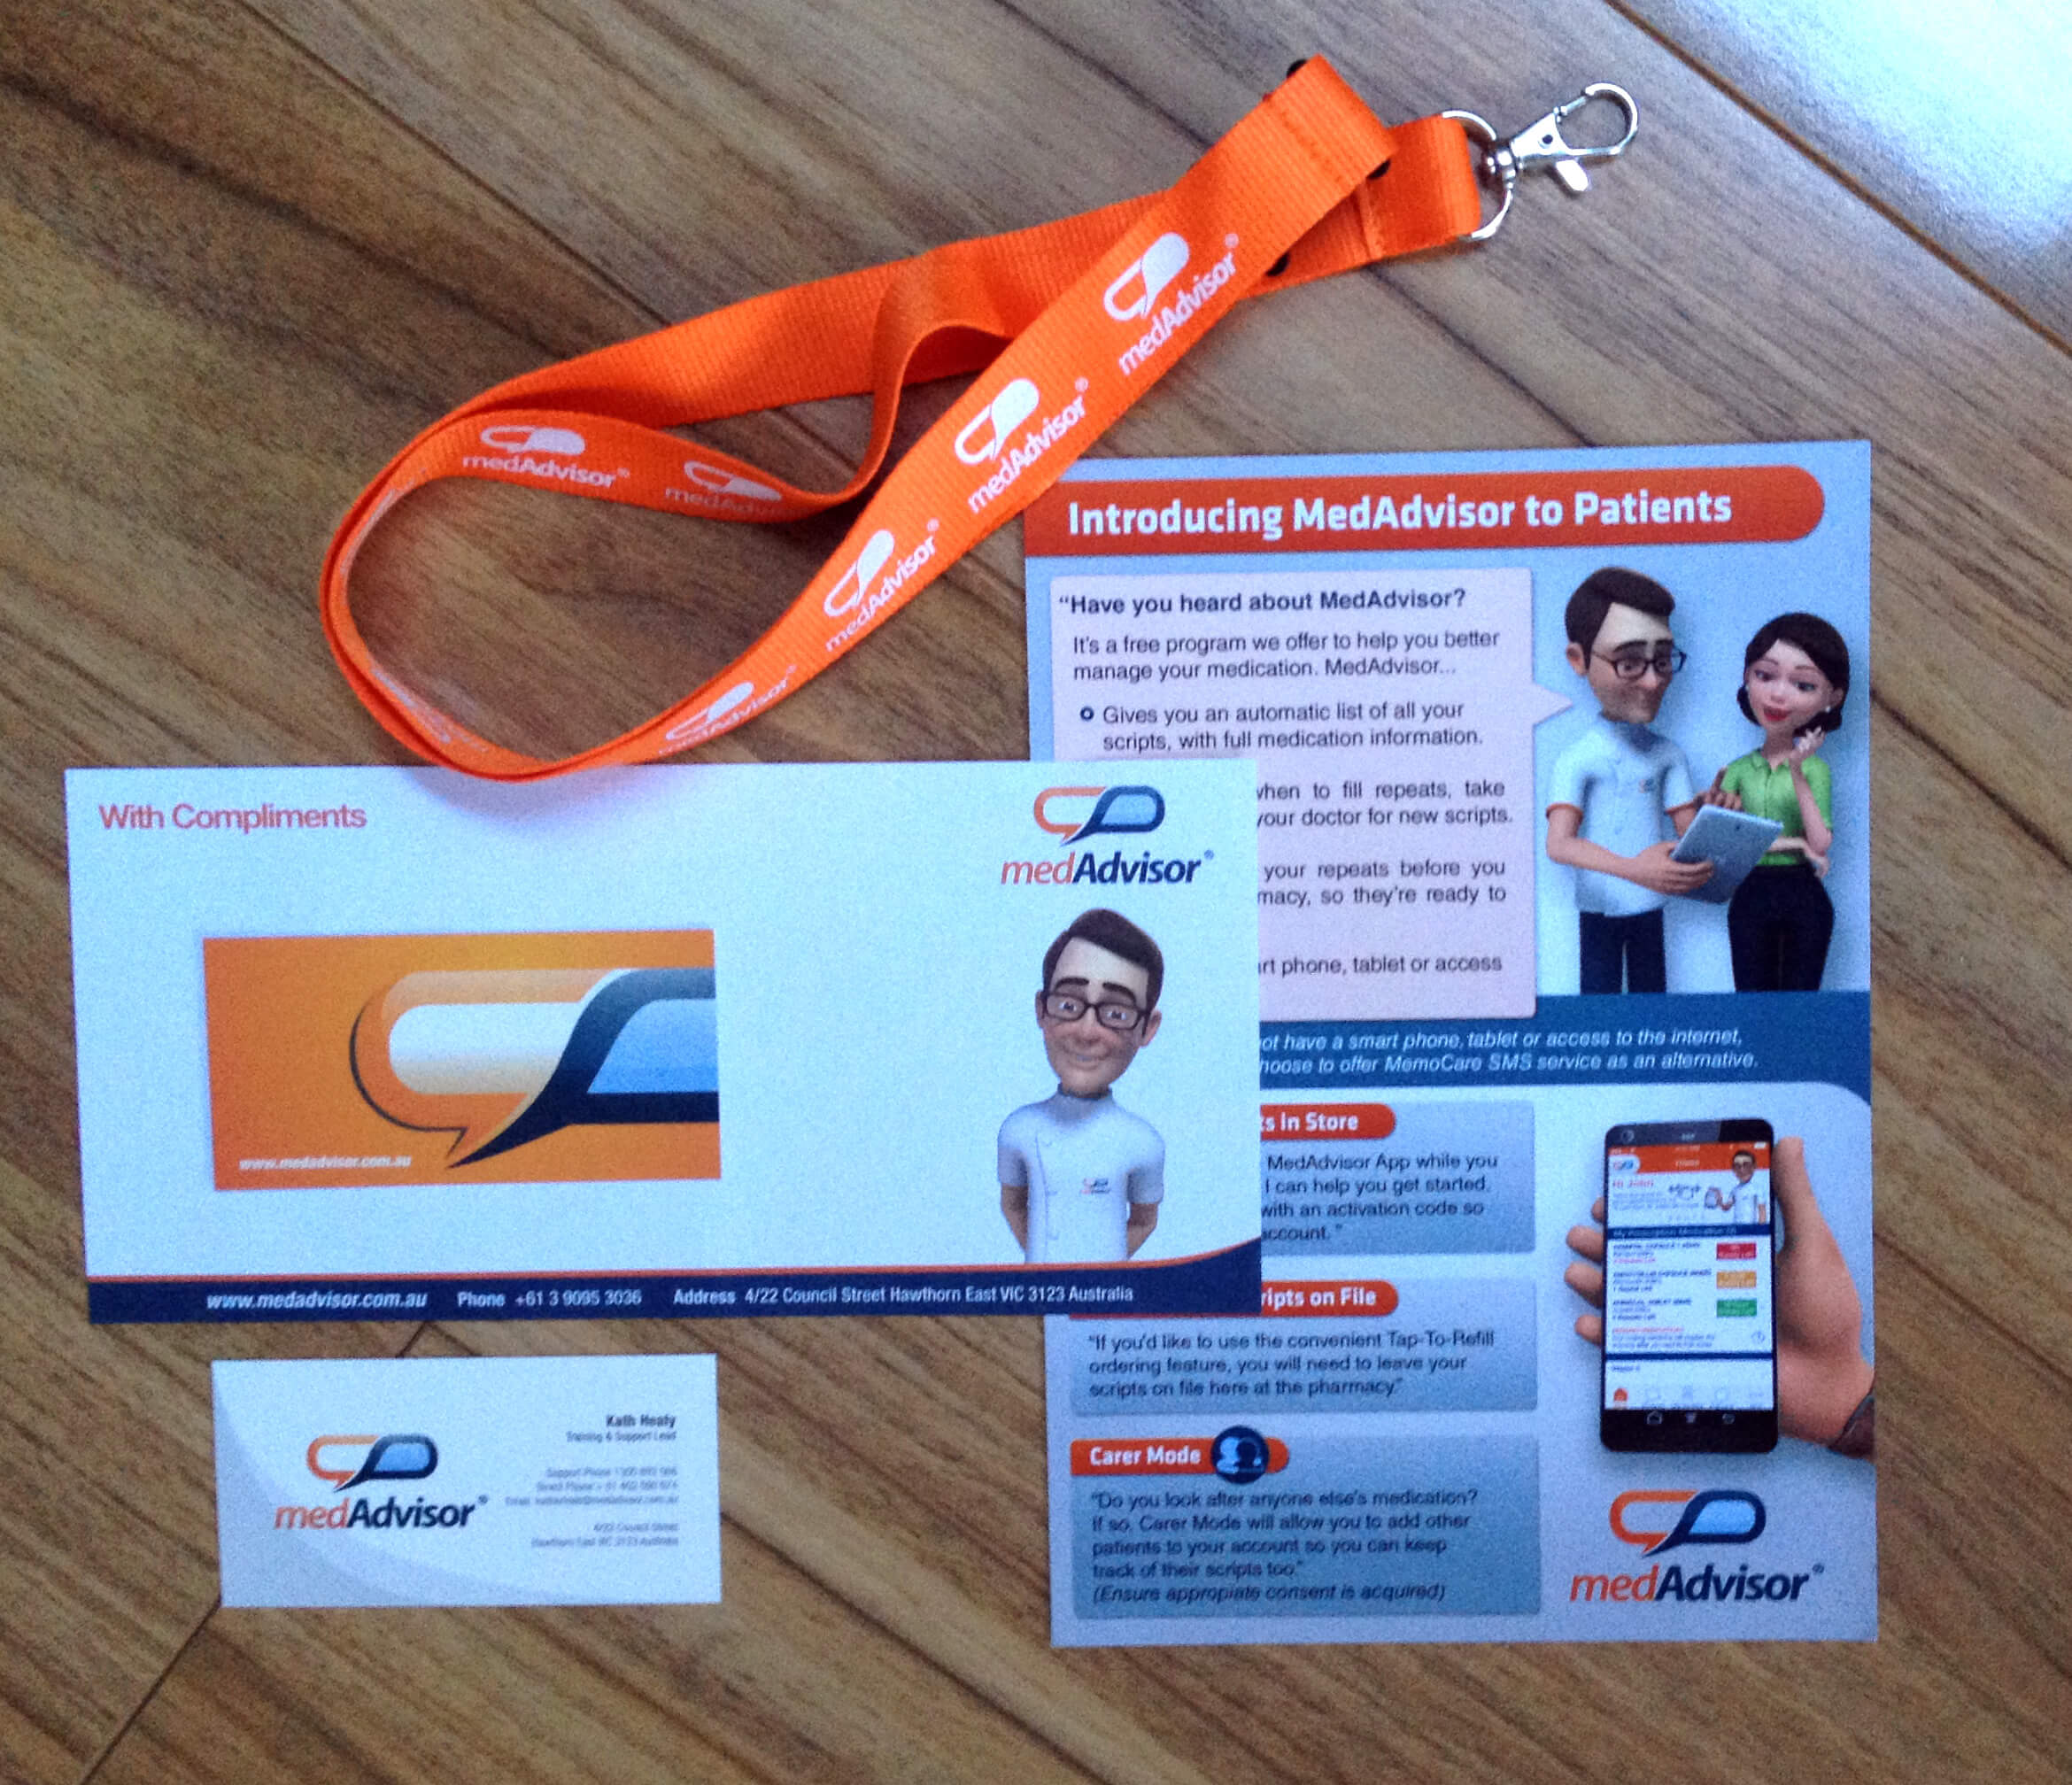 medAdvisor Stationary & Lanyards